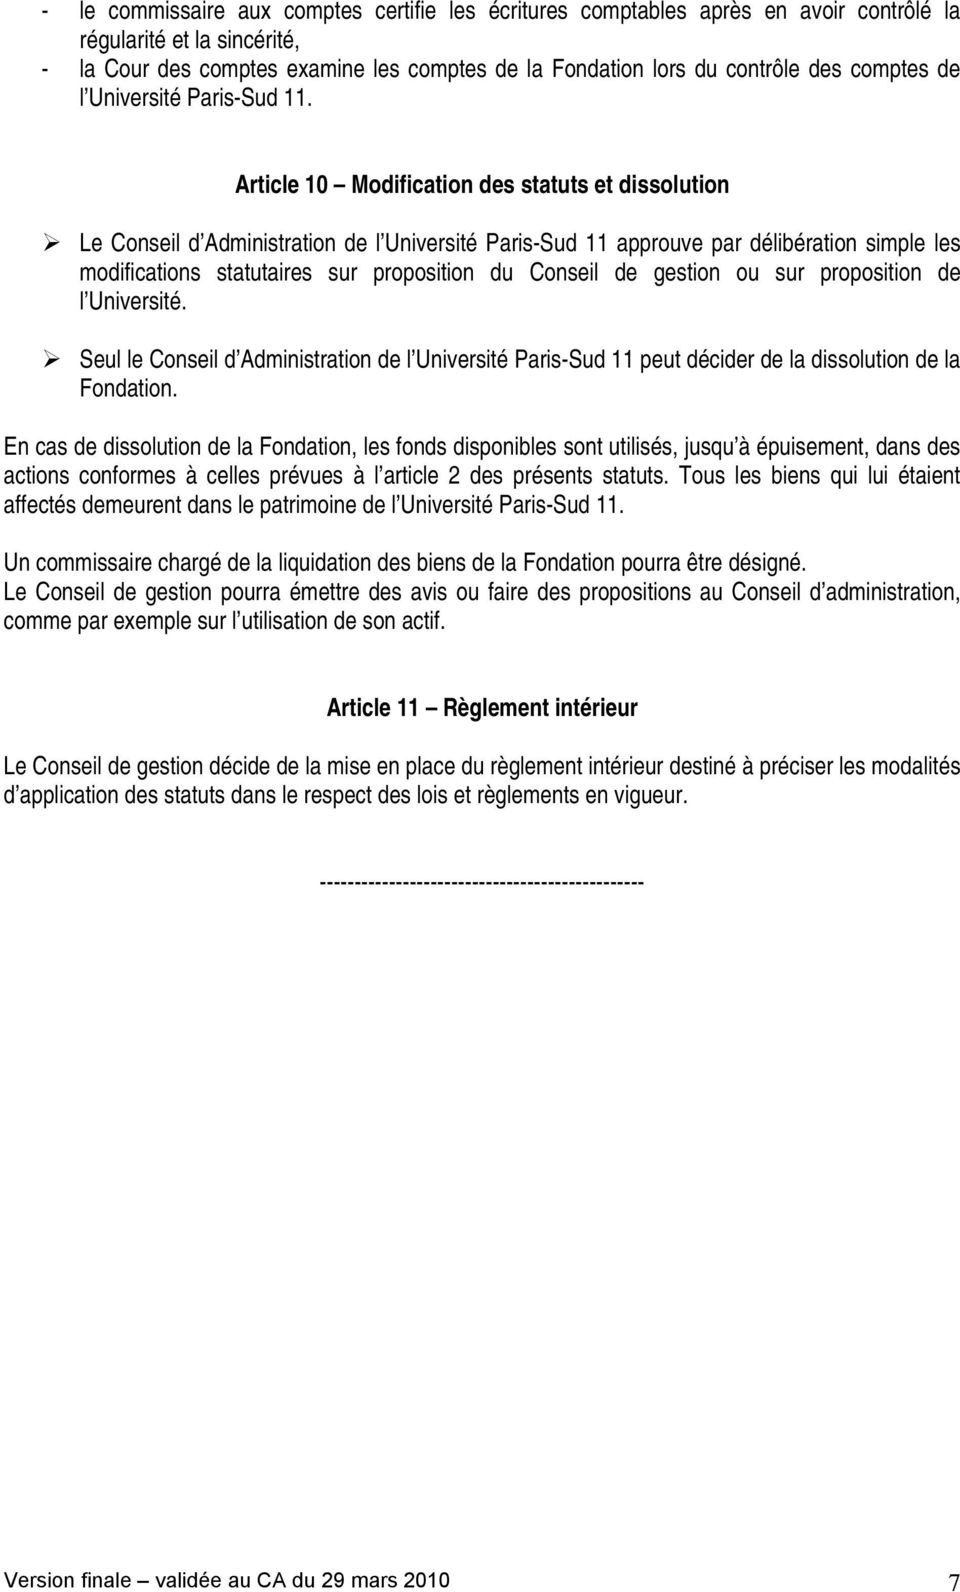 Article 10 Modification des statuts et dissolution Le Conseil d Administration de l Université Paris-Sud 11 approuve par délibération simple les modifications statutaires sur proposition du Conseil